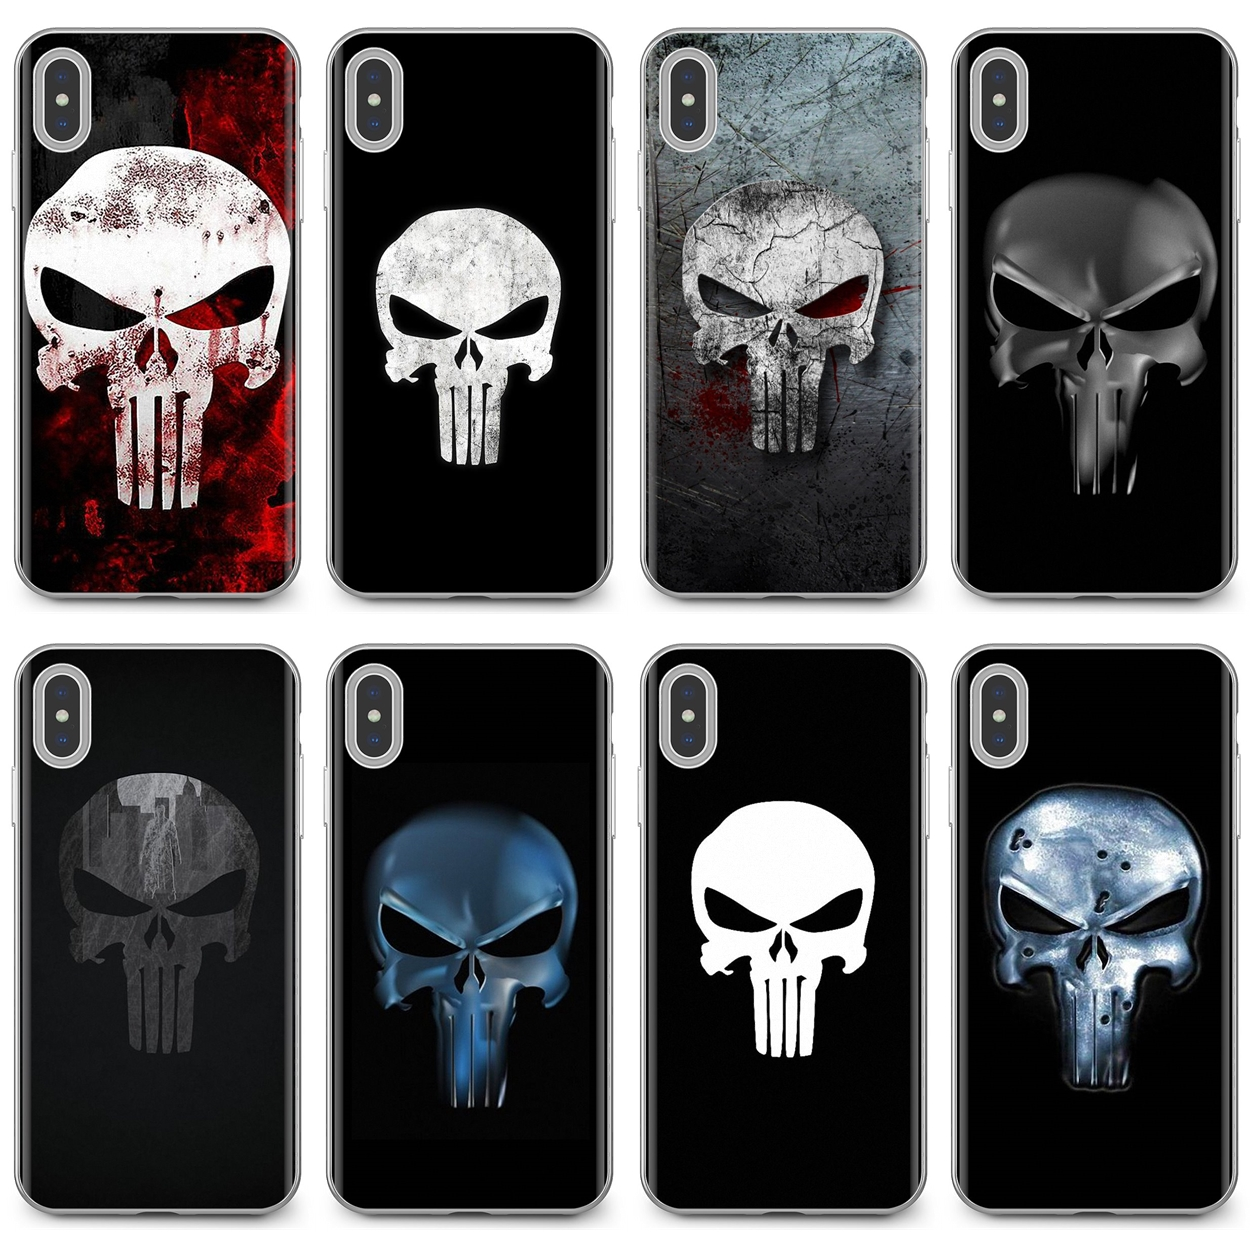 comic The Punisher Skull Metal For Xiaomi Redmi 4A 7A S2 Note 8 3 3S 4 4X 5 Plus 6 7 6A Pro Pocophone F1 Buy Silicone Phone Case(China)